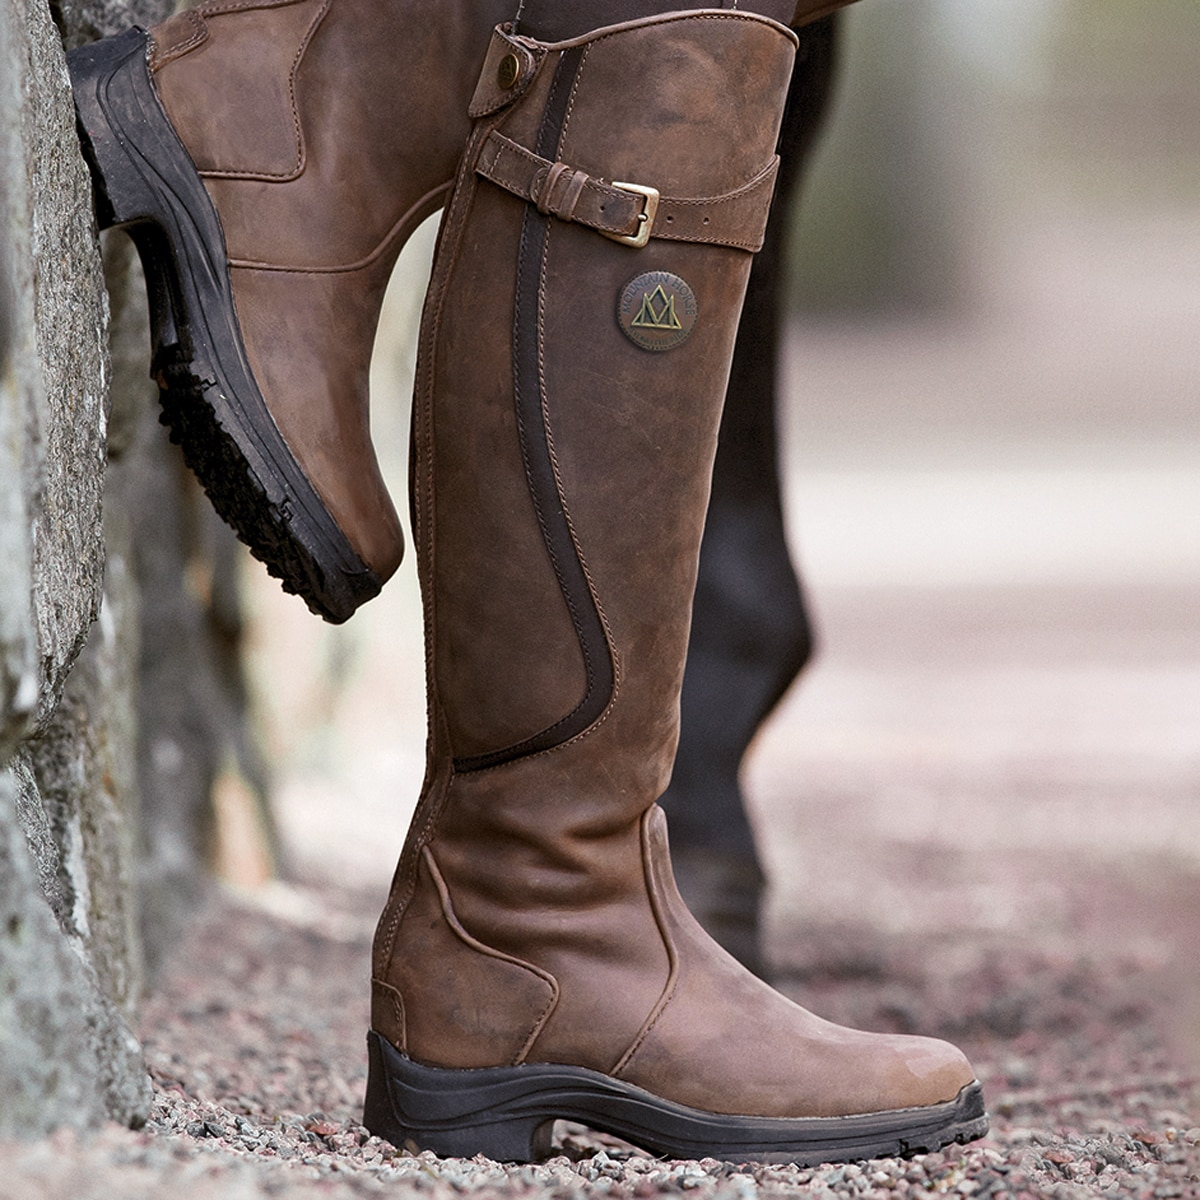 Horse Arena or Work Boots More Protection HUNTER GREEN /& all AUSTRALIAN MADE